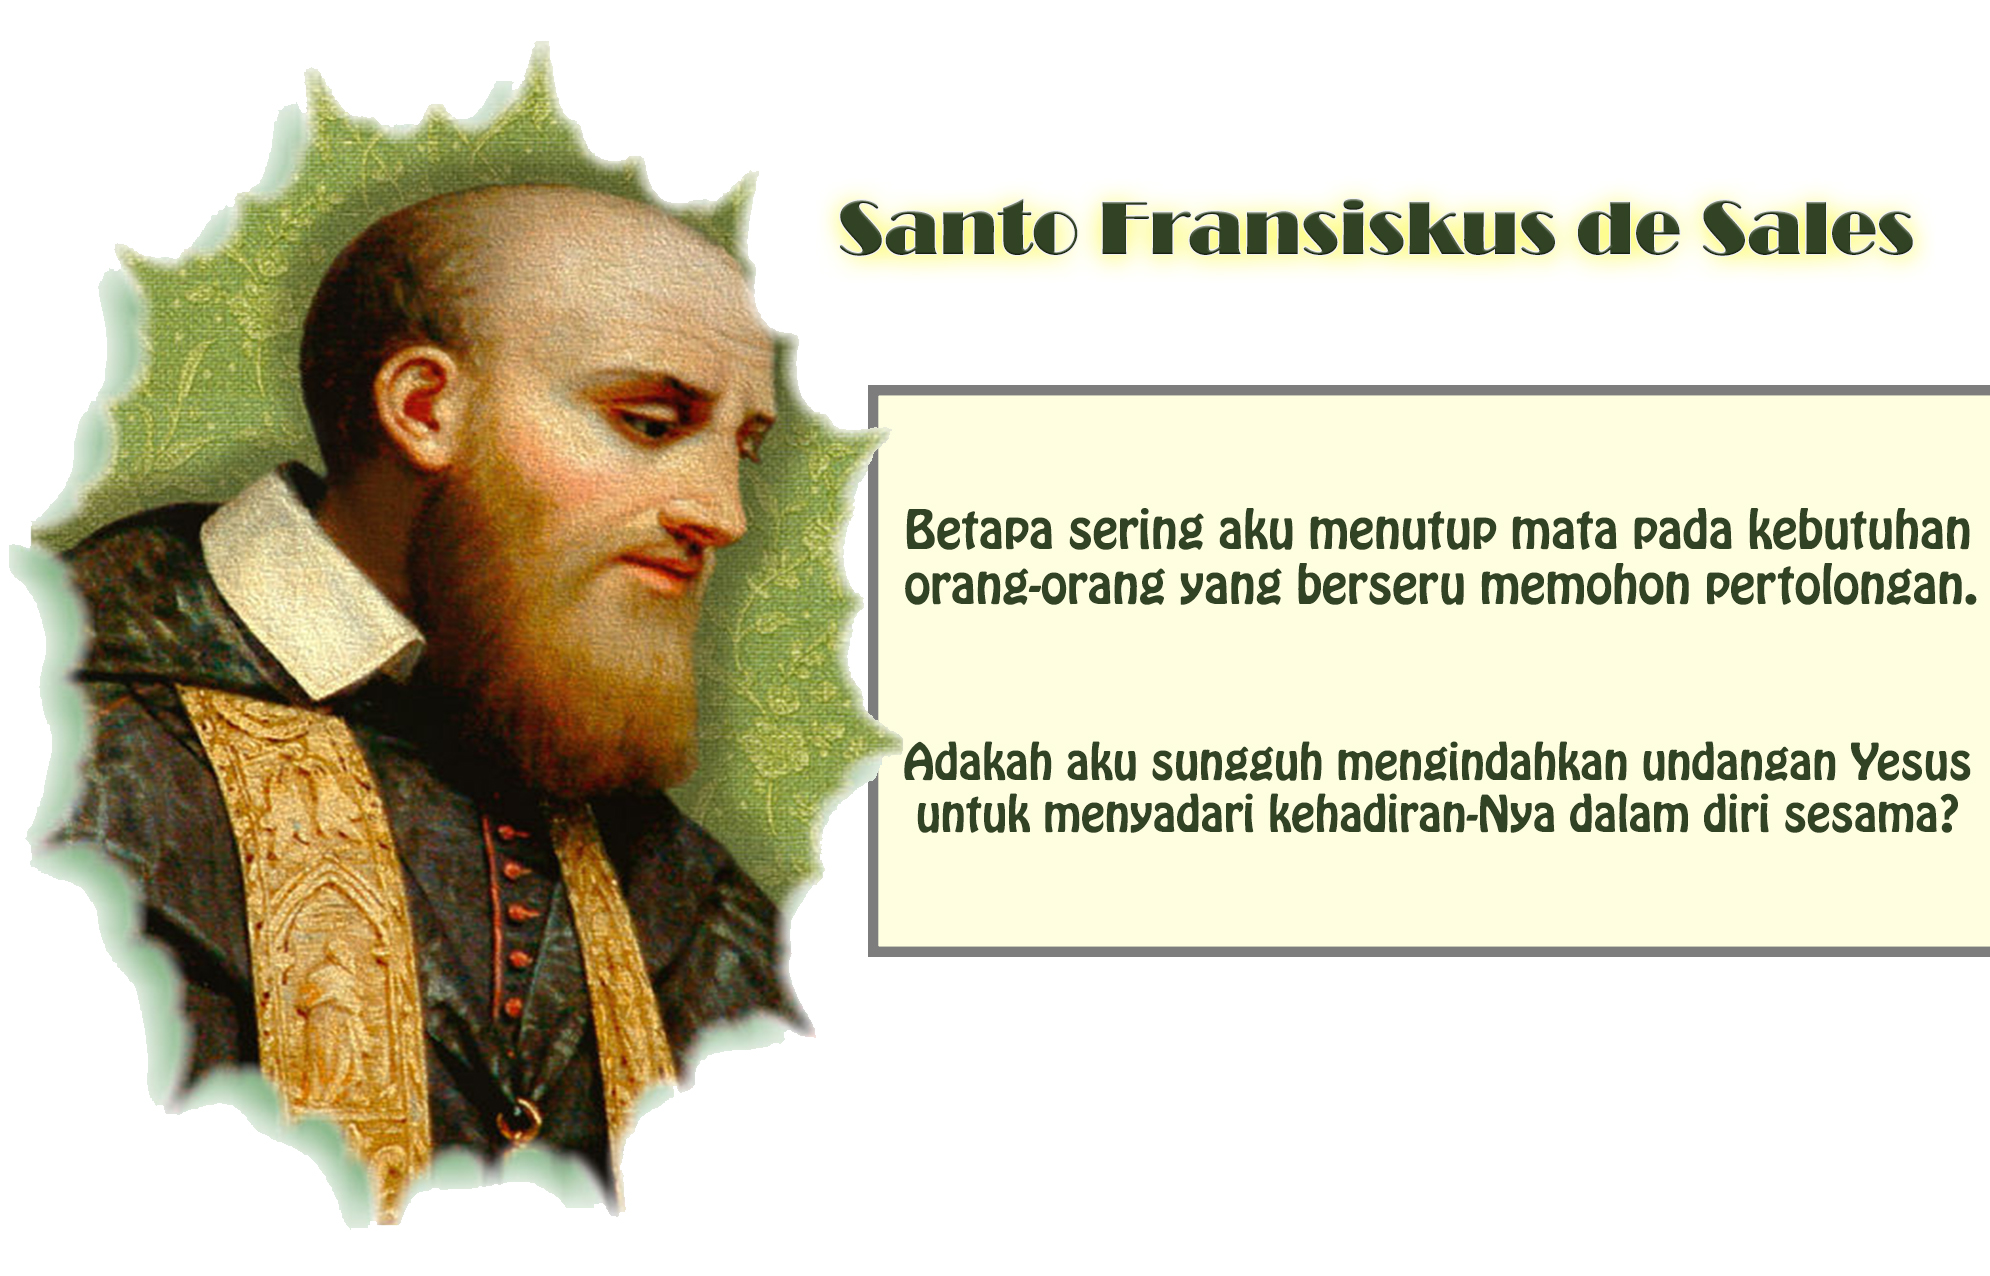 Santo Fransiskus De Sales,law firm,car donate,car donation,Personal Injury,Medical Malpractice,Criminal Law,DUI,Family Law,Bankruptcy,Business Law,Consumer Law,Employment Law,Estate Planning,Foreclosure Defense,Immigration Law,Intellectual Property,Nursing Home Abuse,Probate,Products Liability,Real Estate Law,Tax Law,Traffic Tickets ,Workers' Compensation